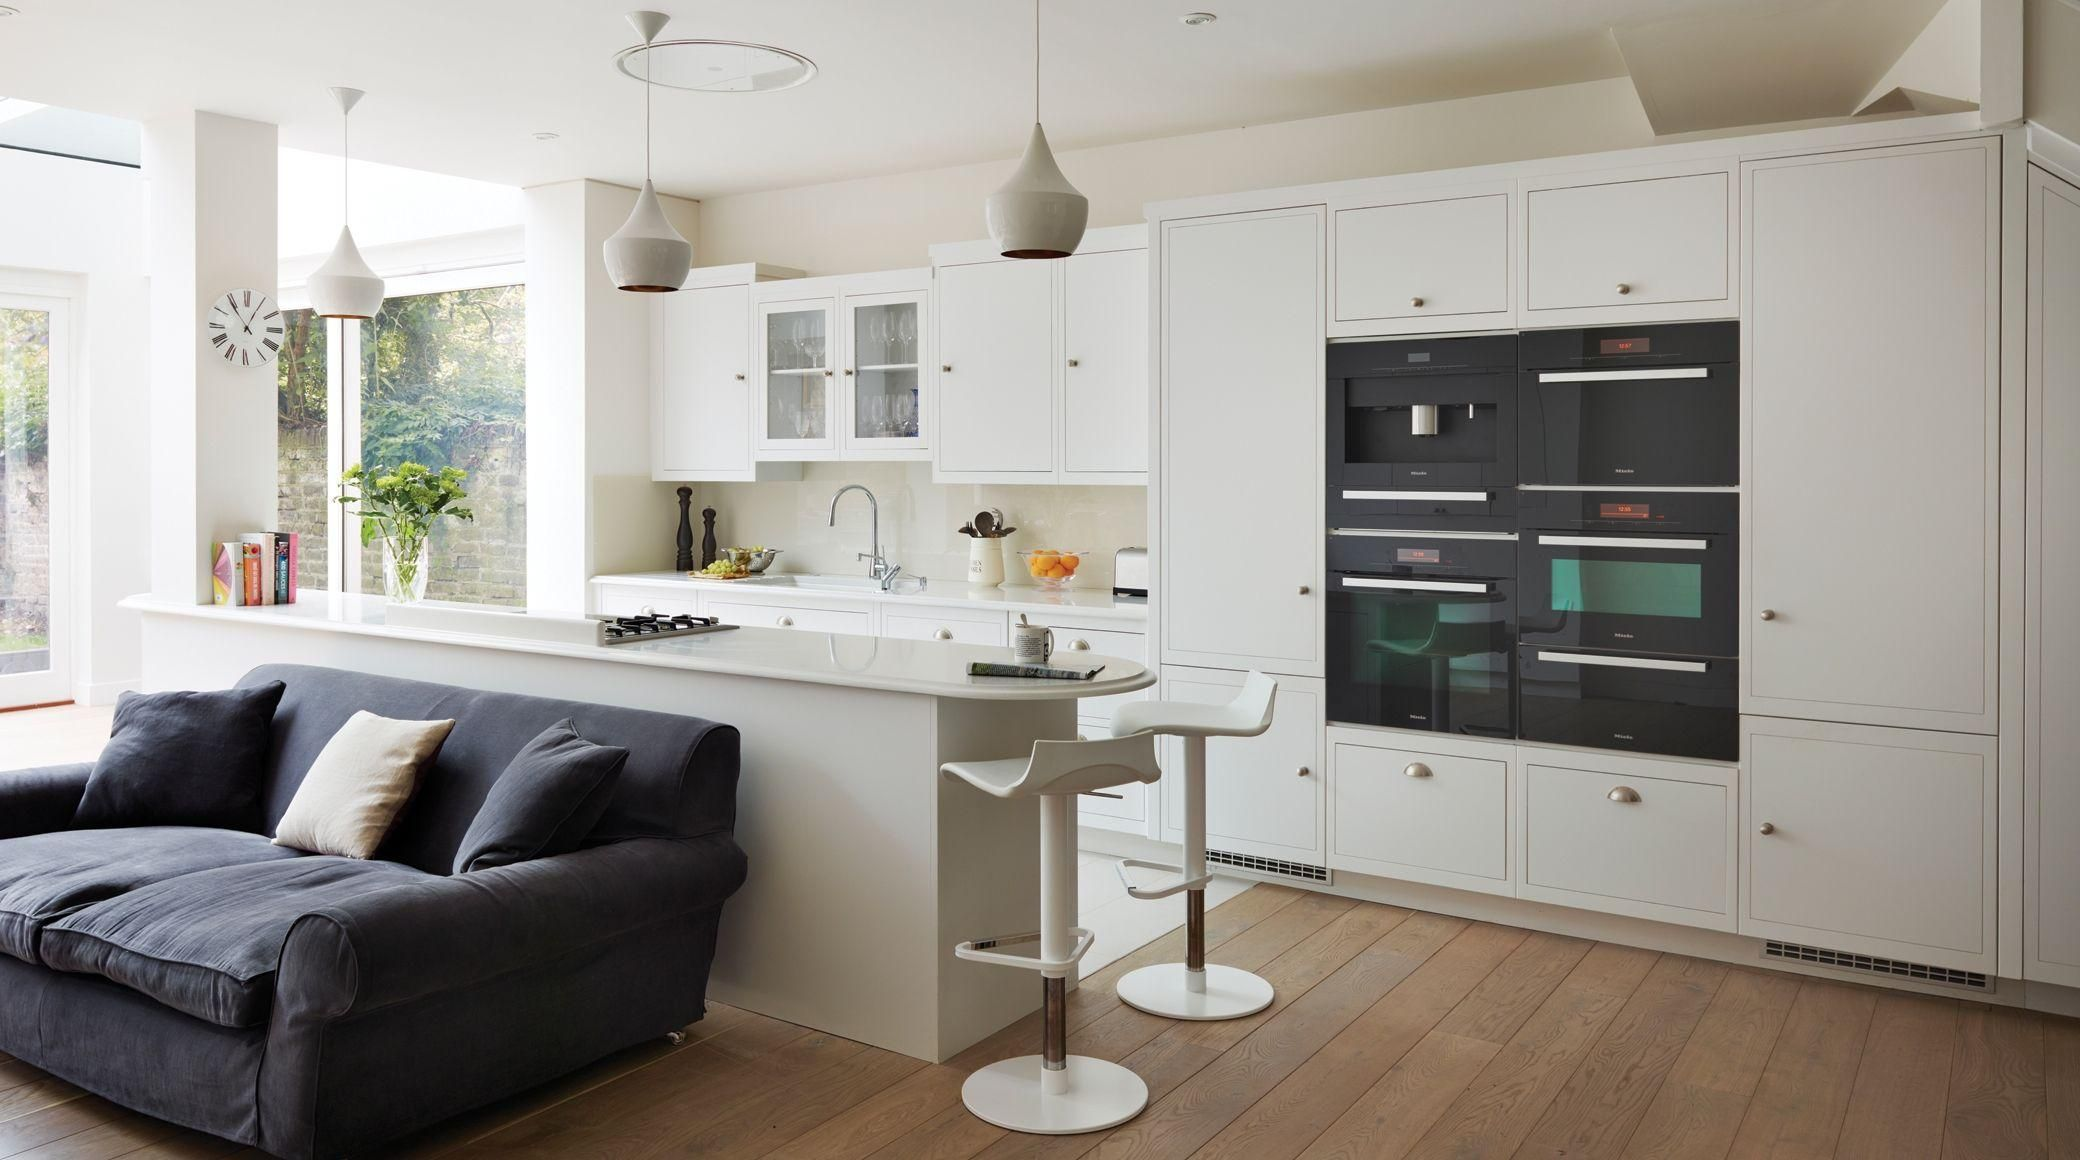 (Harvey Jones Linear Kitchen)